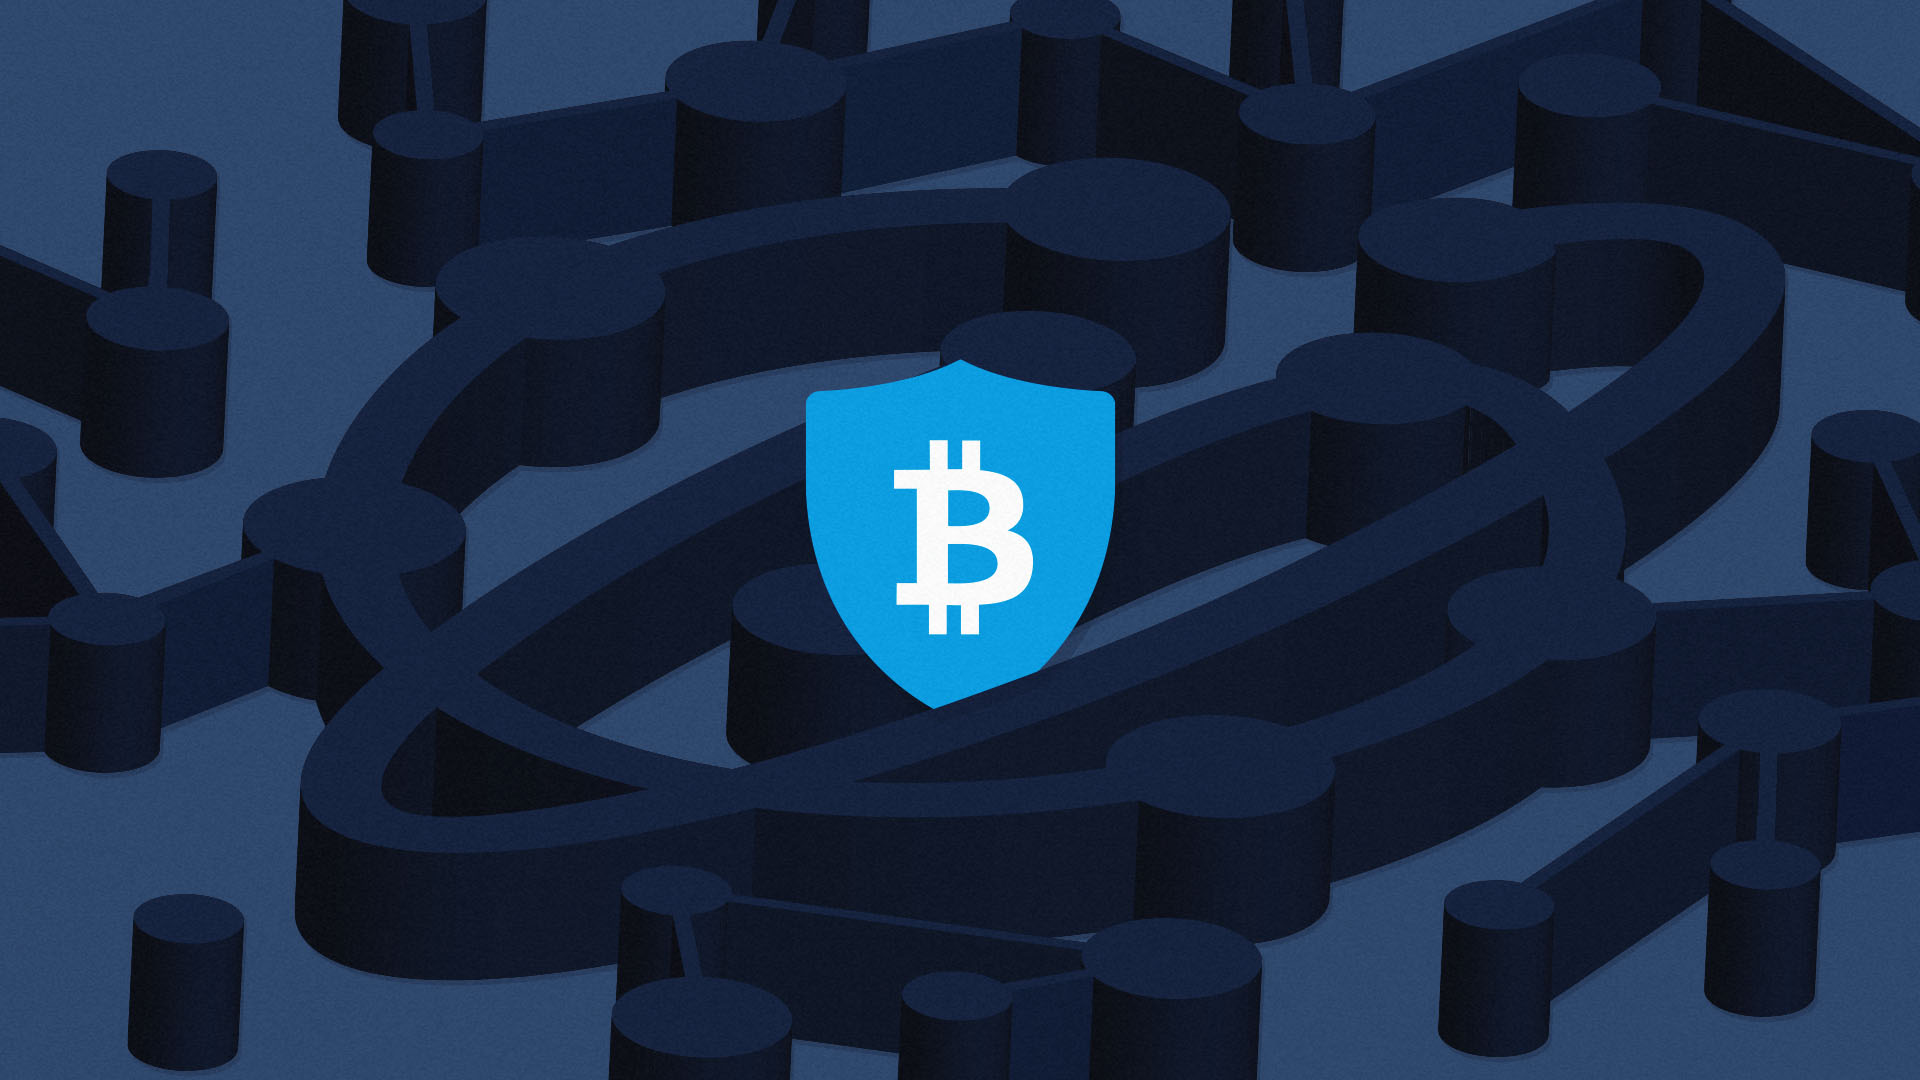 Galaxy Digital just agreed to buy crypto custodian BitGo for $1.2 billion. This is an image with its logo.